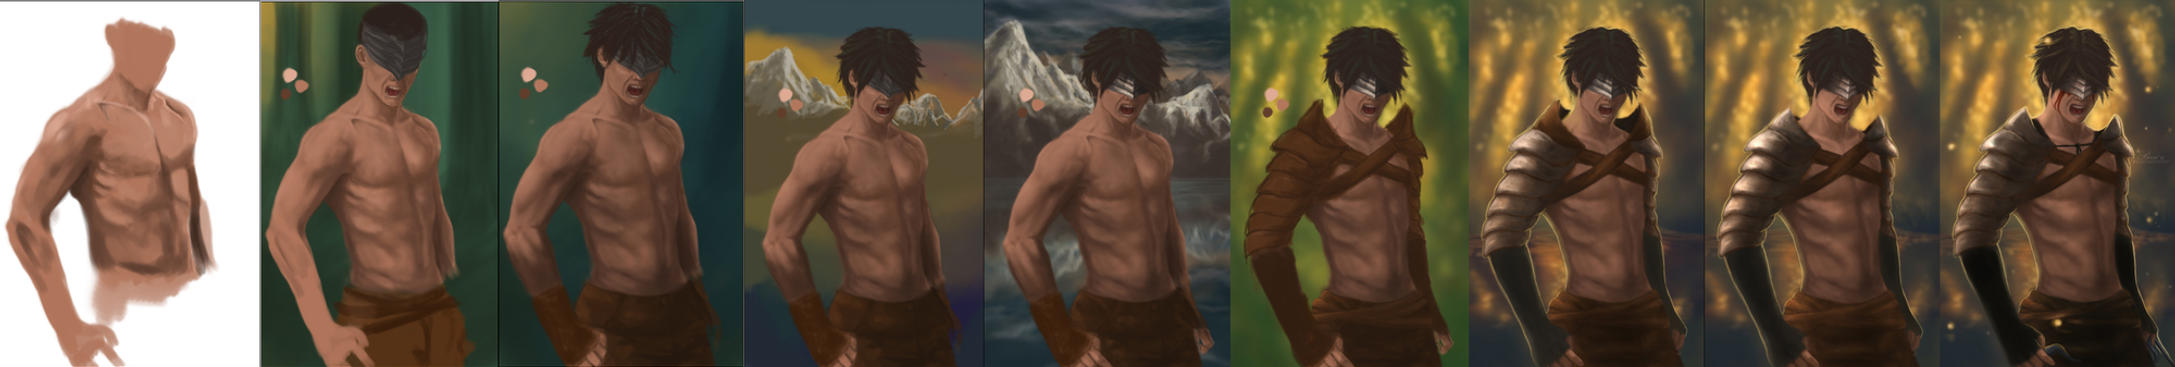 The Pain of Loss - step by step by Becso-dimension